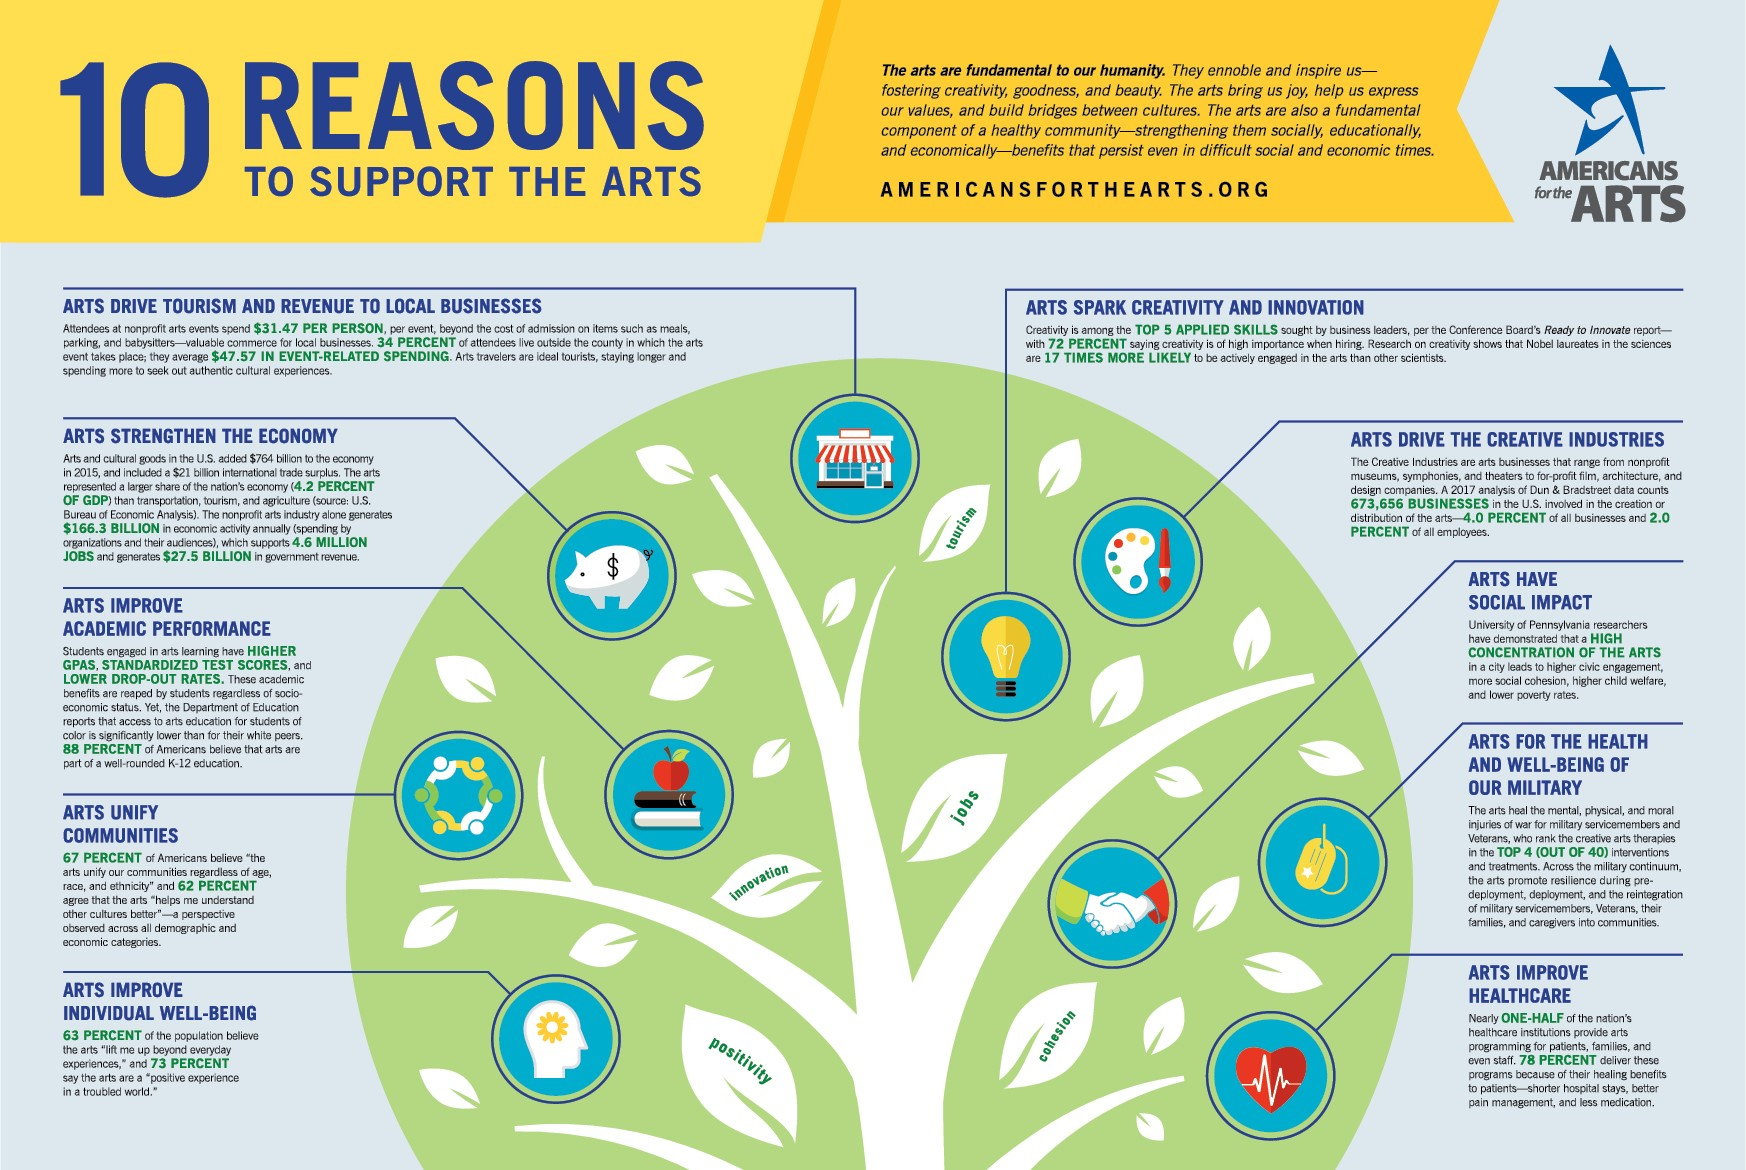 10 Reasons to Support the Arts